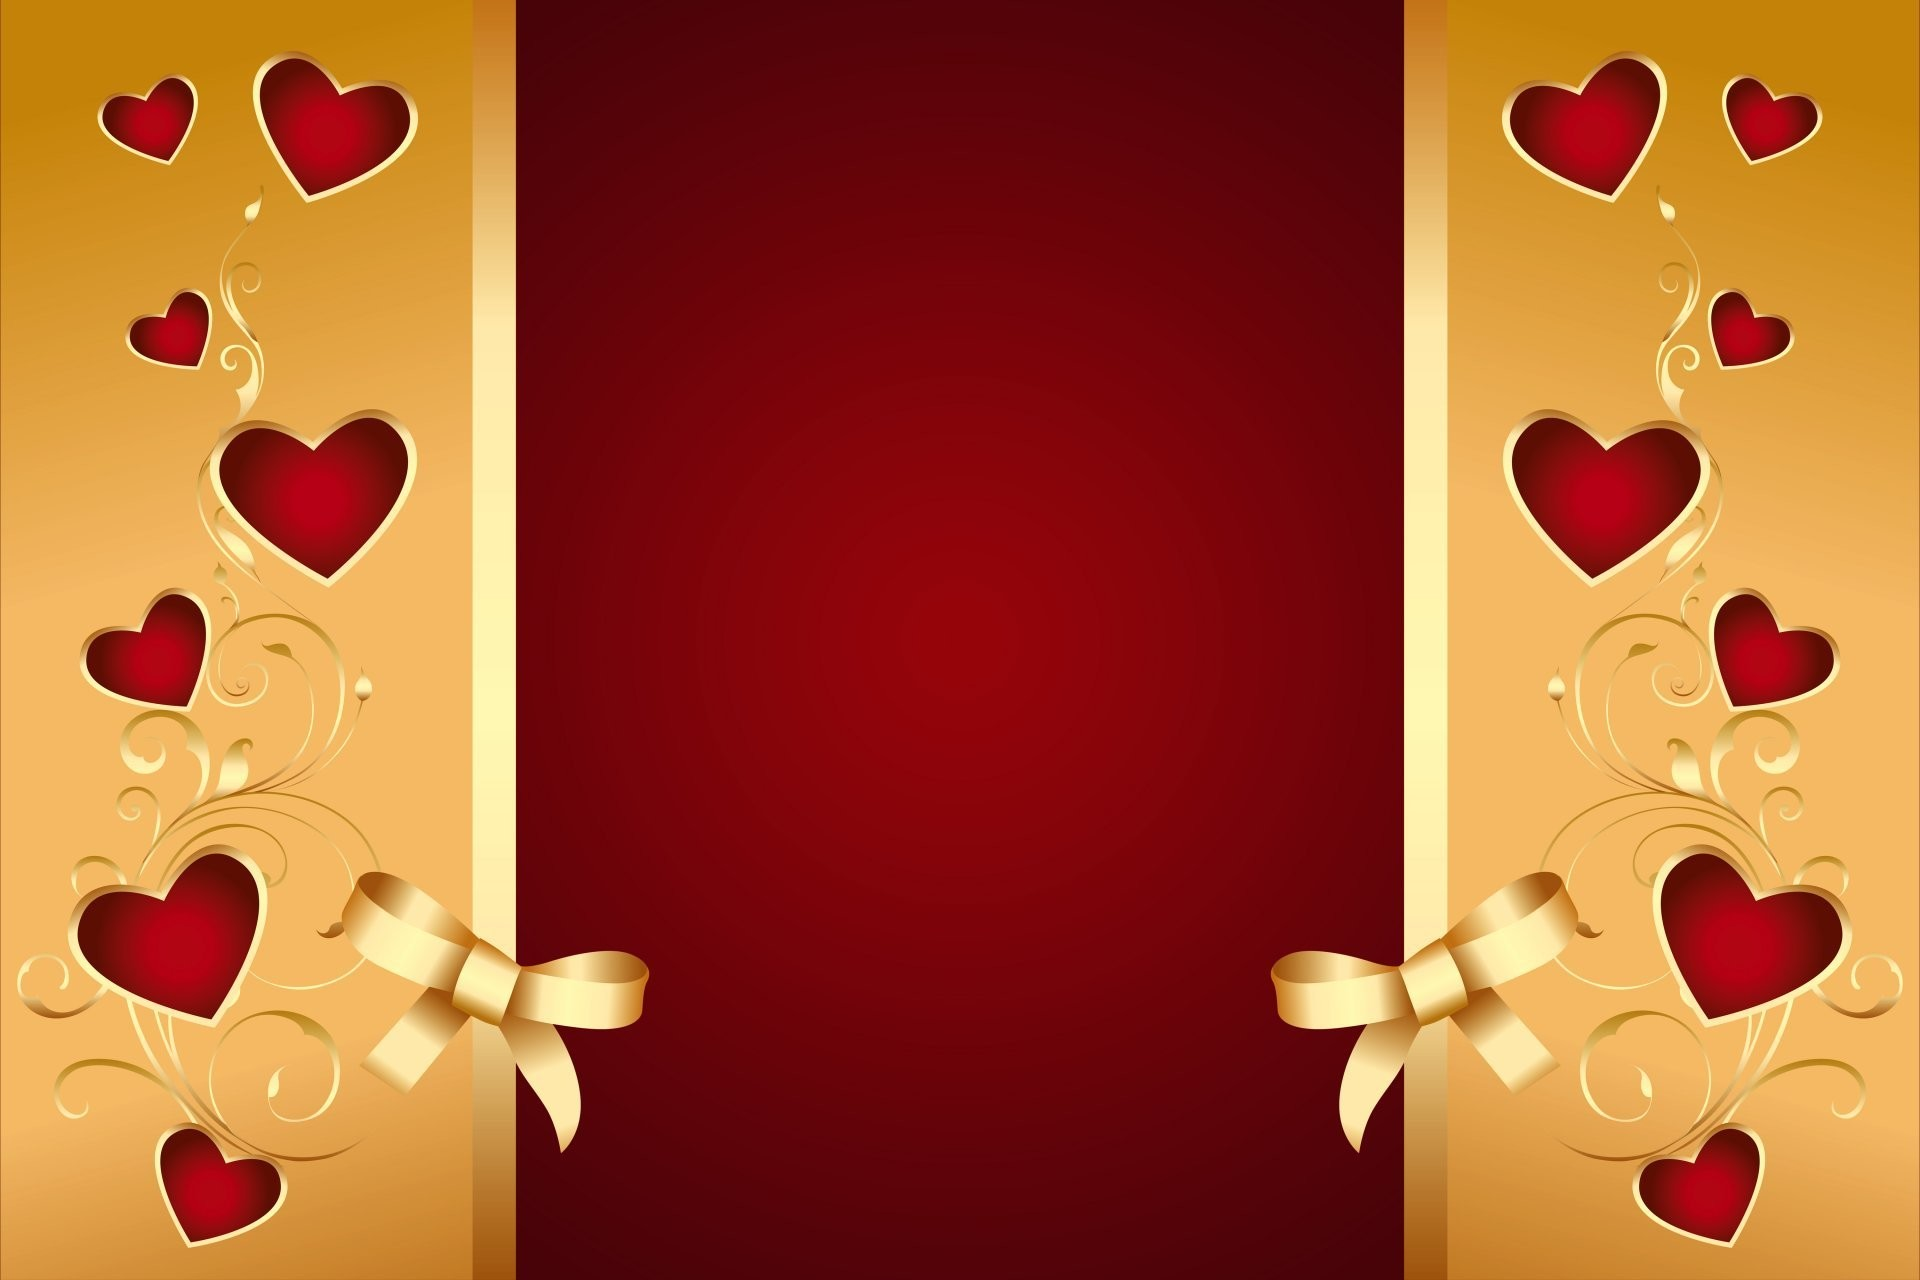 1920x1280 Red Golden Hearts Bow Romantic Love Valentine Background  Background Heart